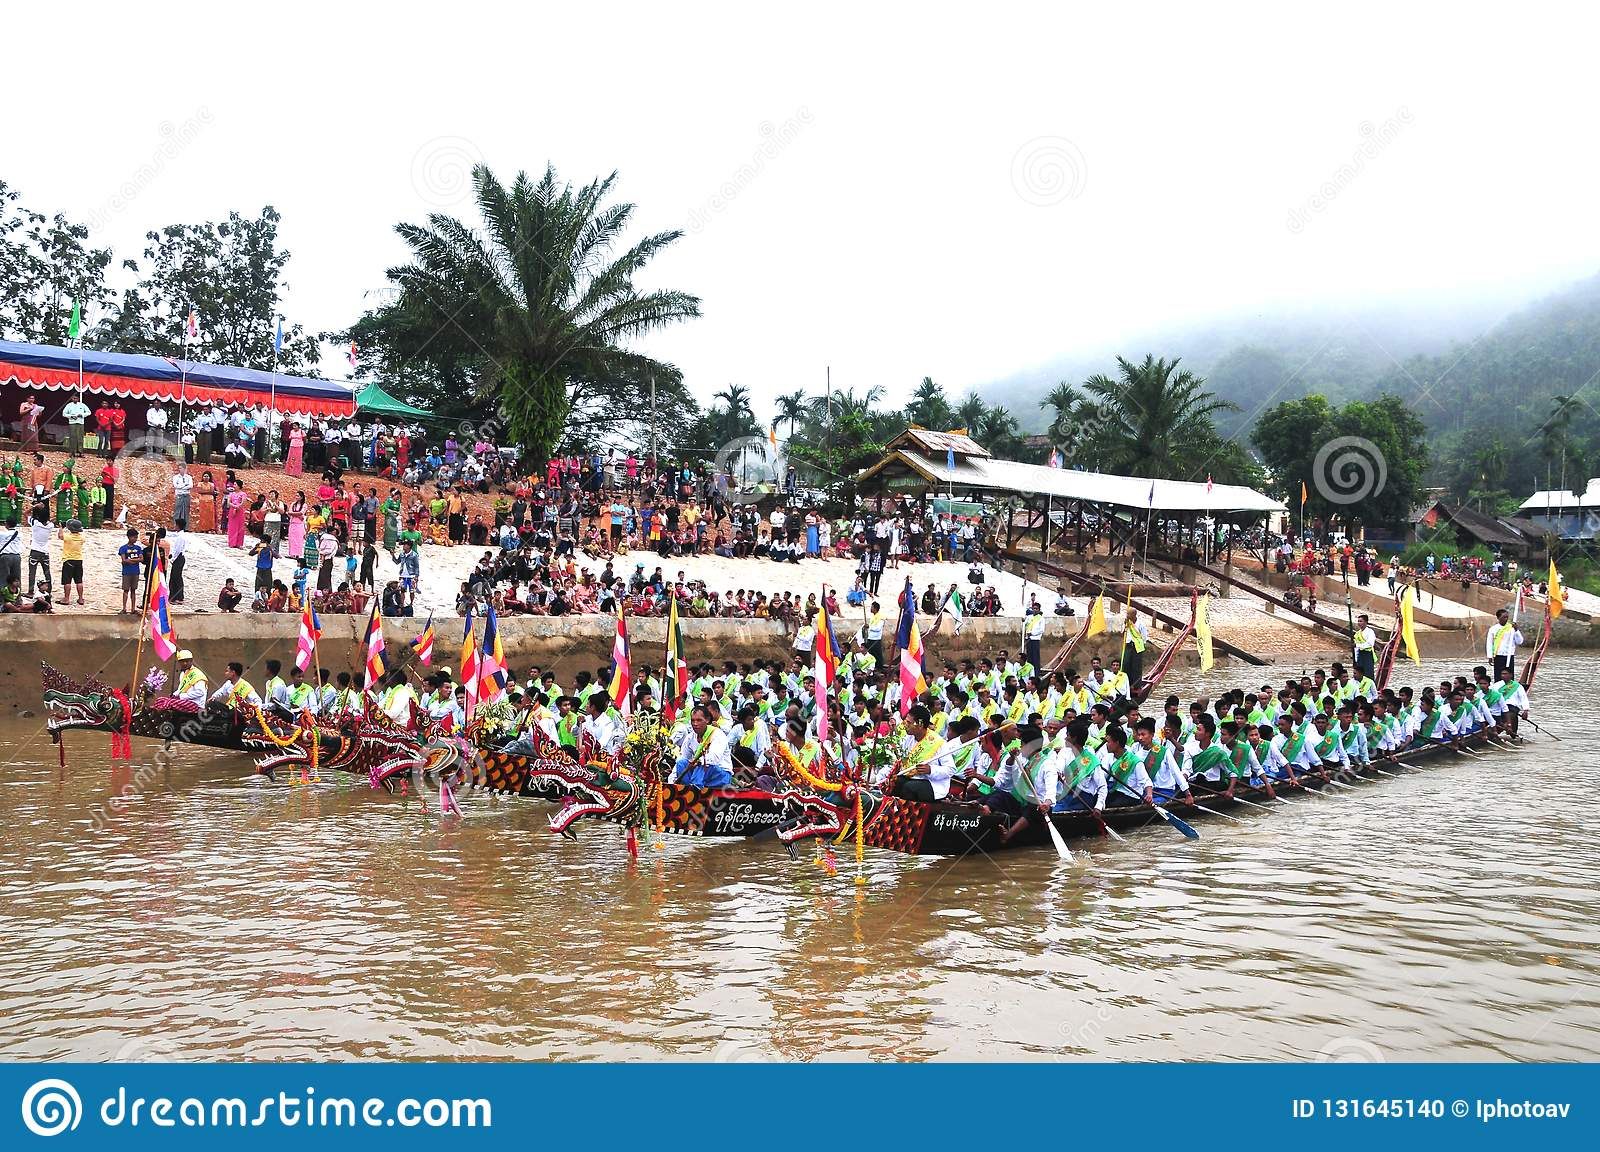 King of Nagas long boat racing festival , This event has been the pride of Tanintharyi for